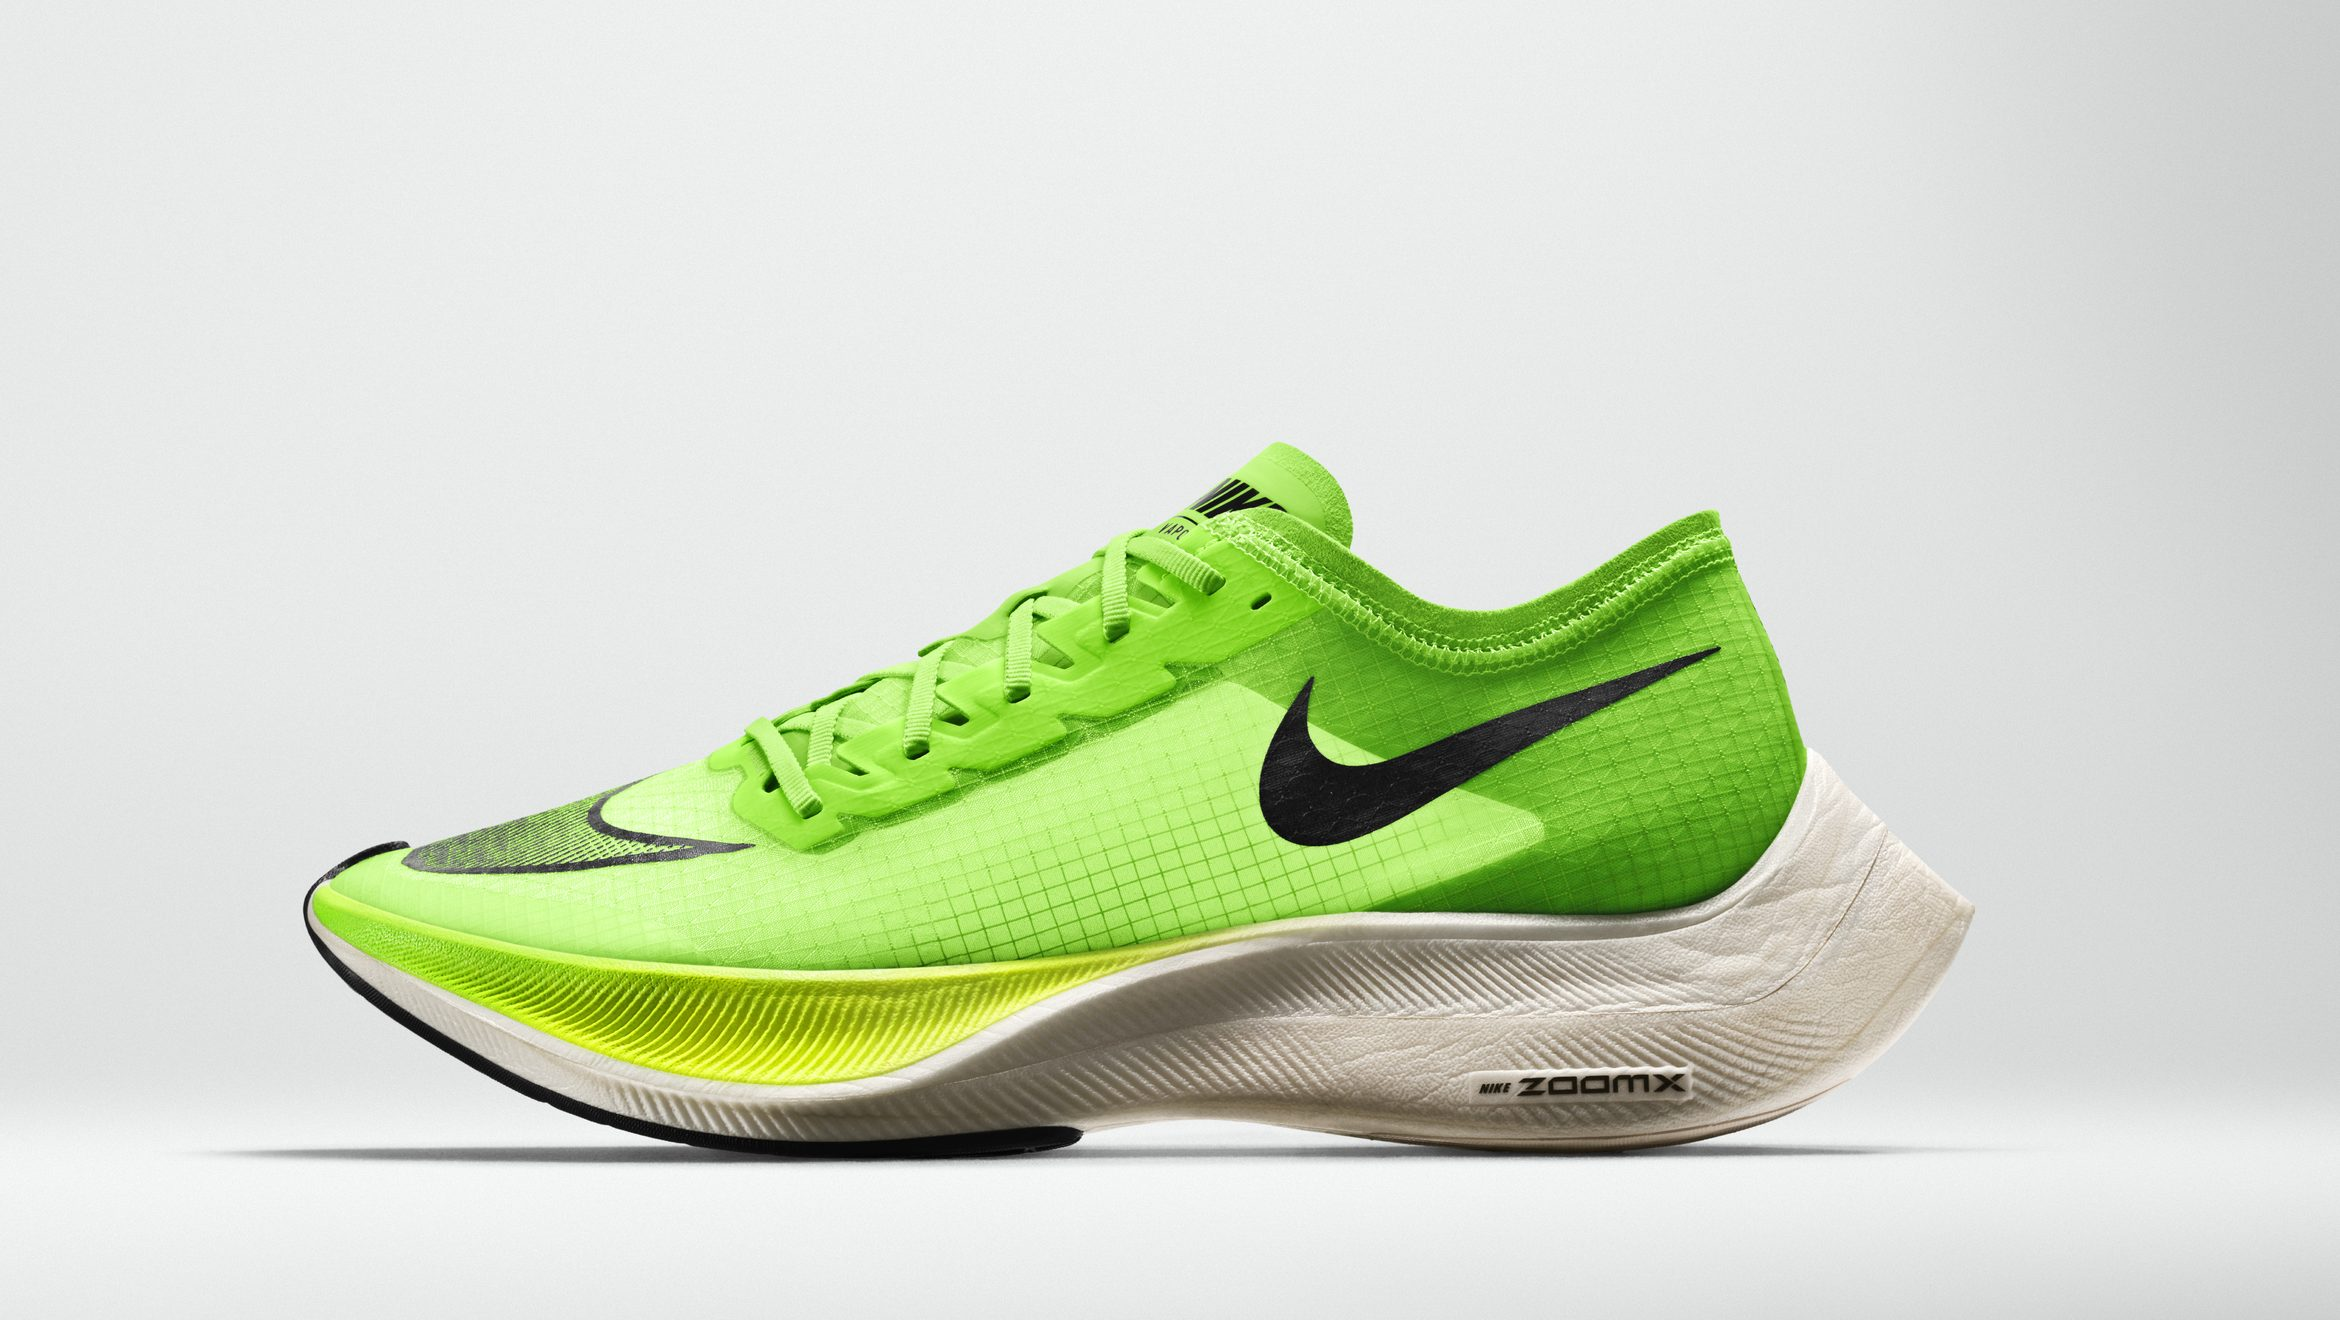 Will Nike's Vaporfly Next% decide the